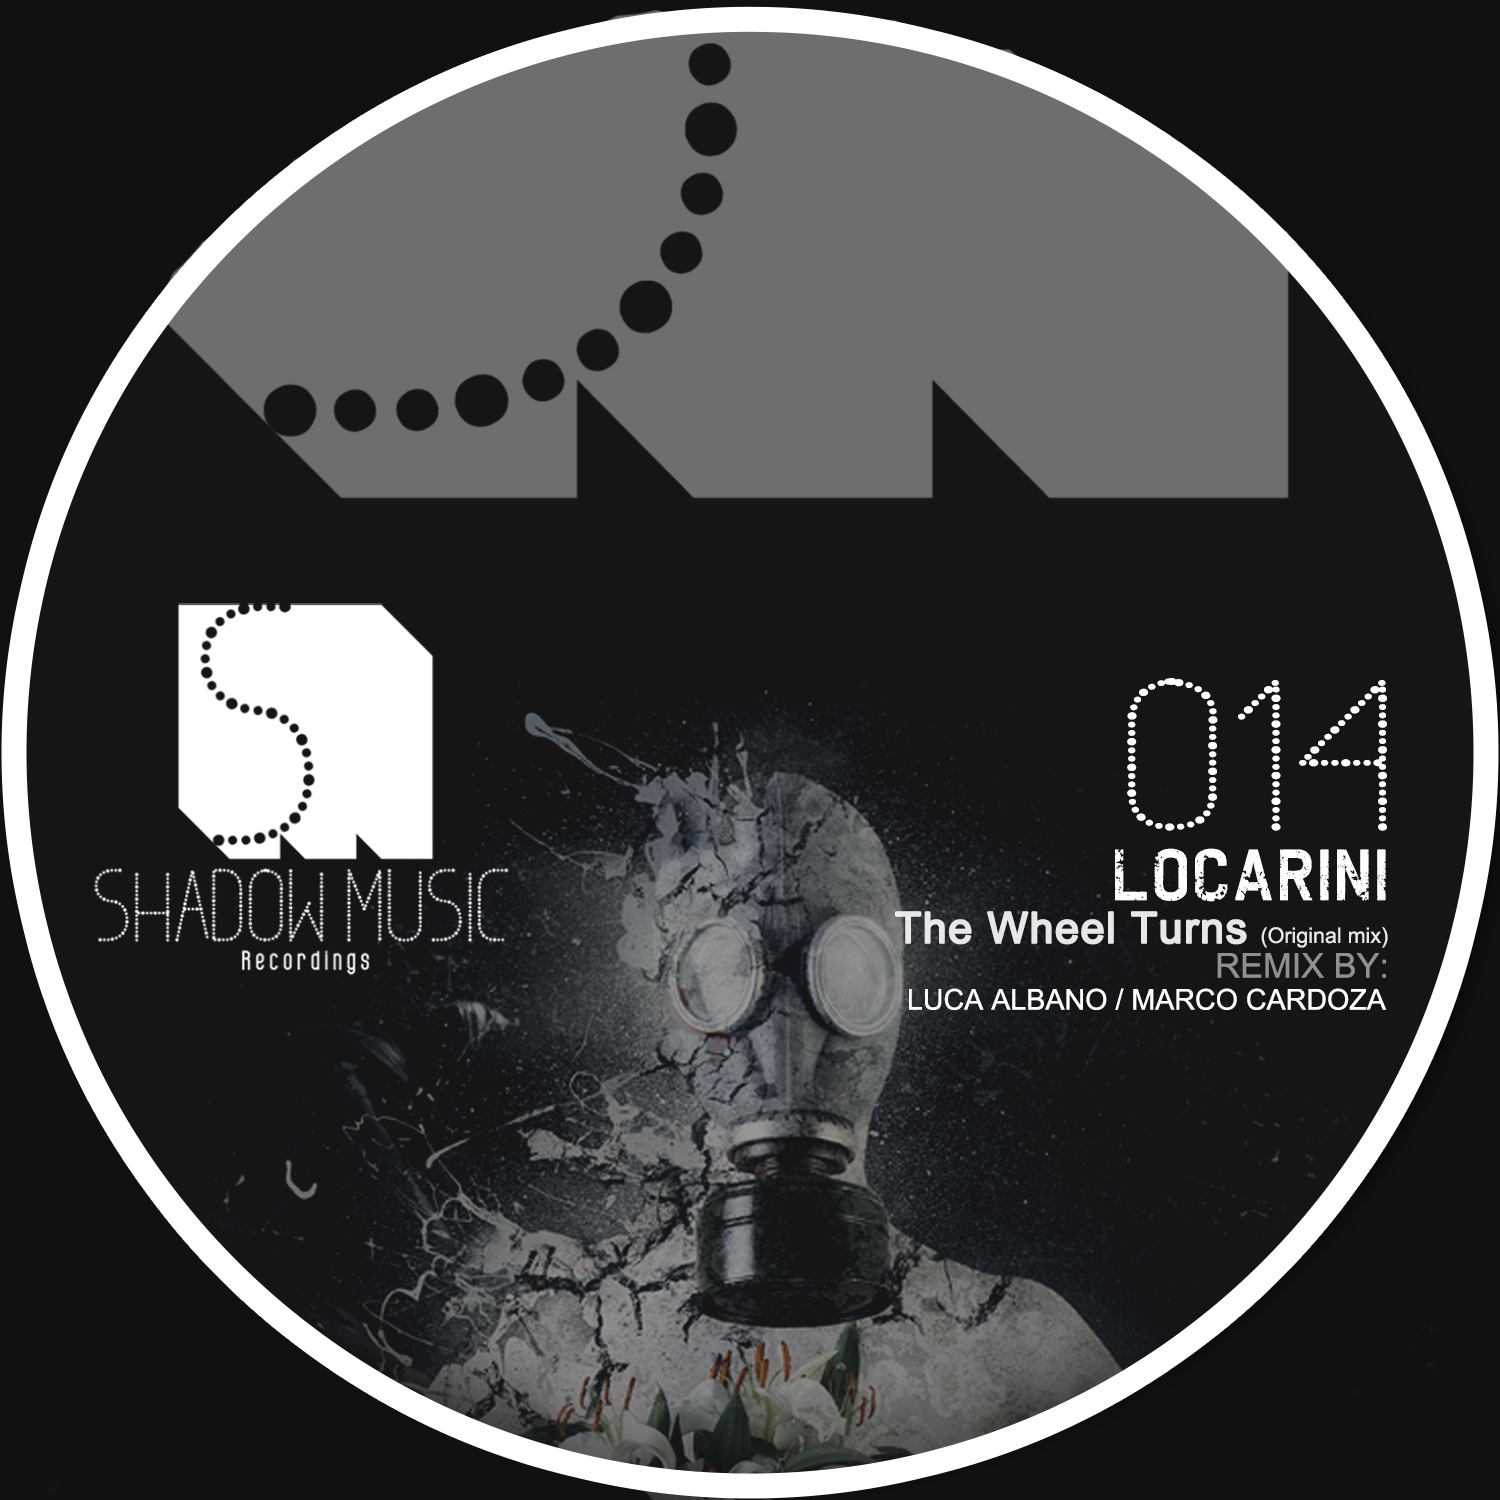 Locarini - The Wheel Turns (Luca Albano Remix)